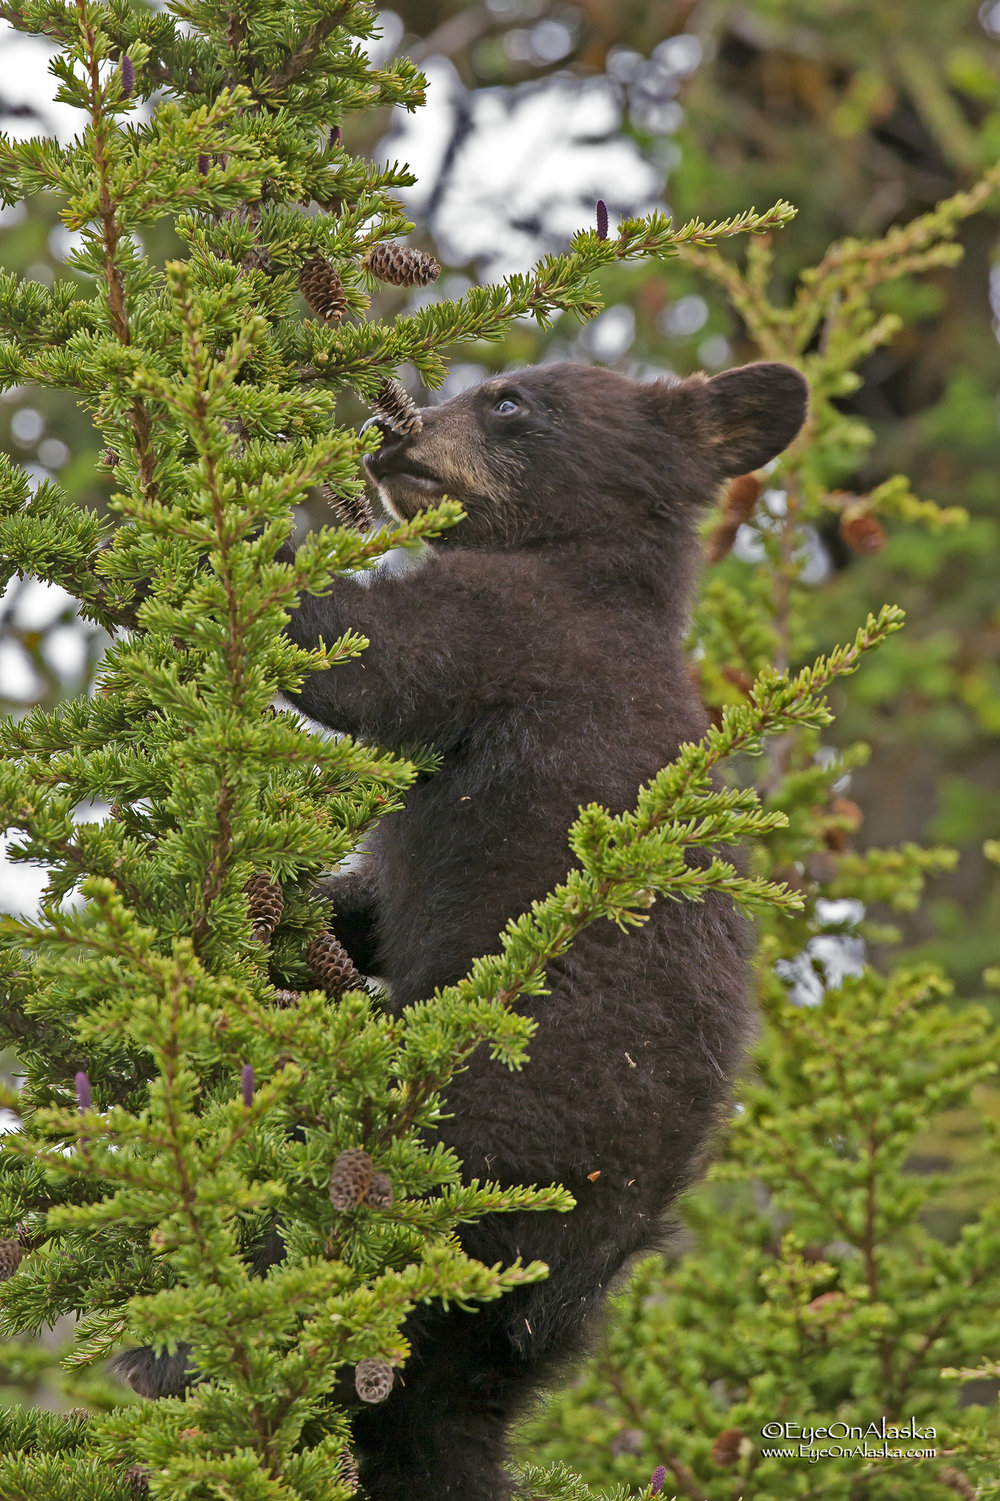 Let's just see what's up here.  A very brown black bear cub.  They come in all different shades.